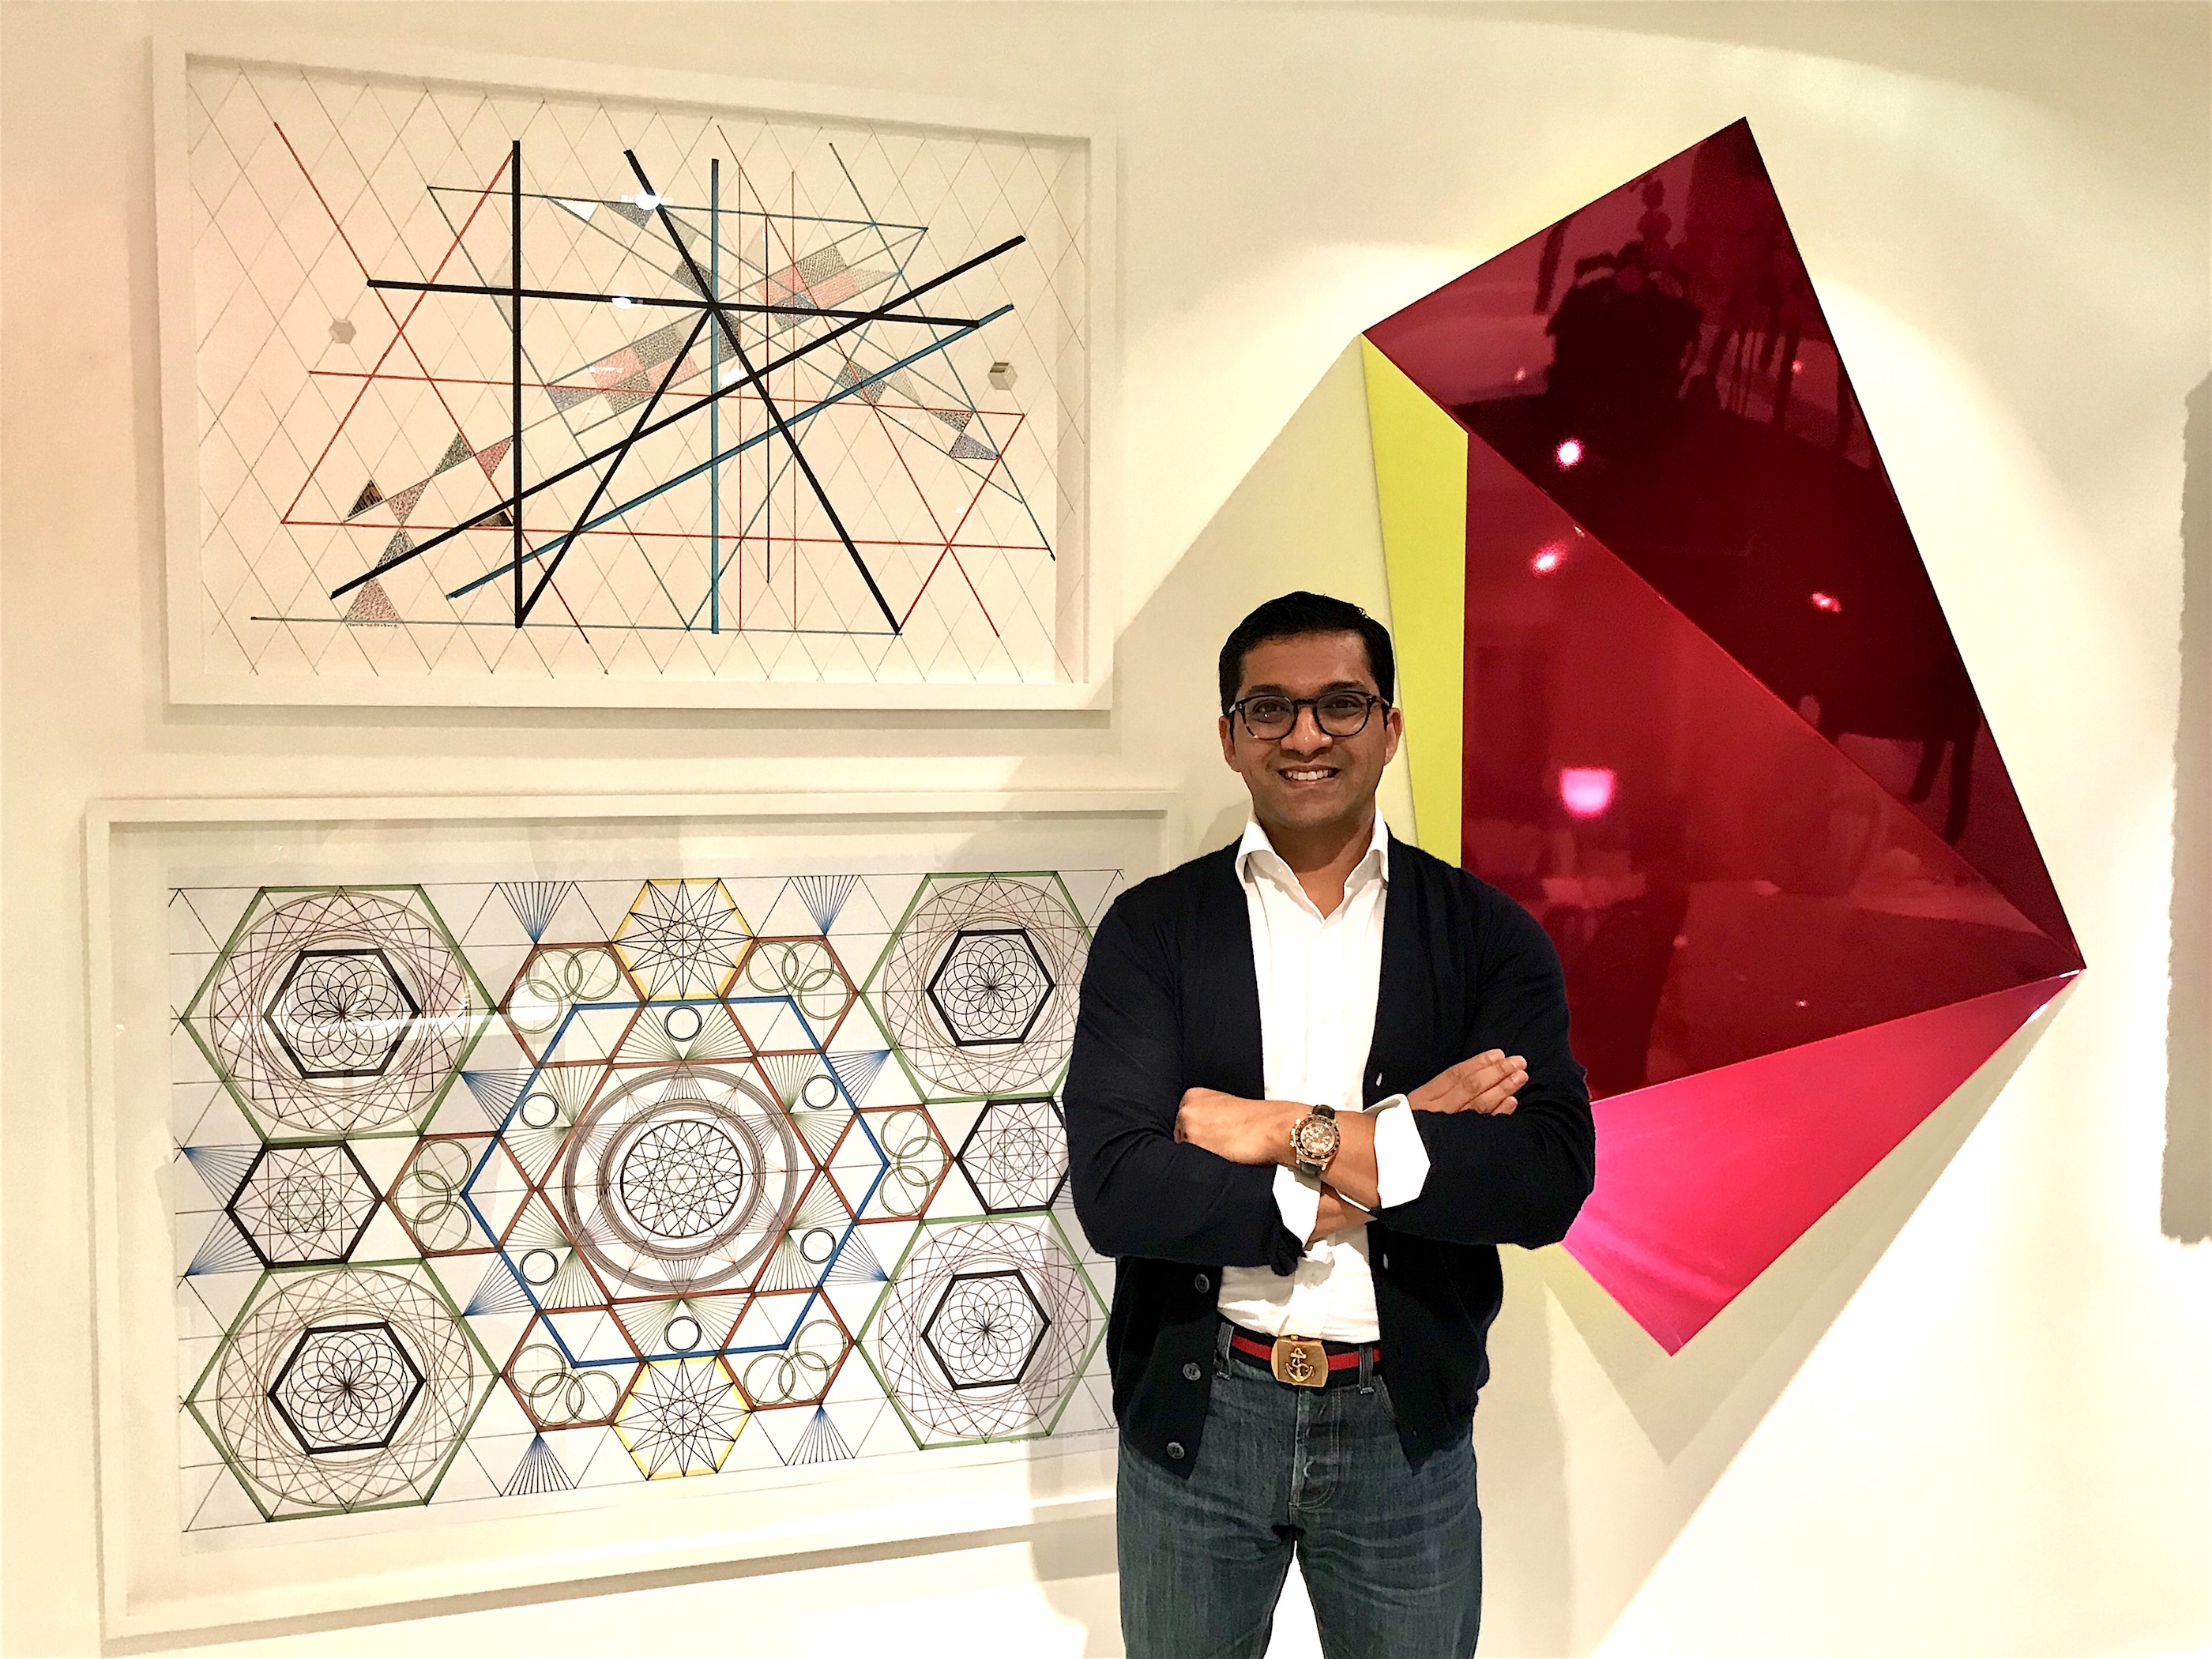 Artworks by Monir Farmanfarmaian (left) and Rana Begum (right). Courtesy of Shohidul Ahad-Choudhury.